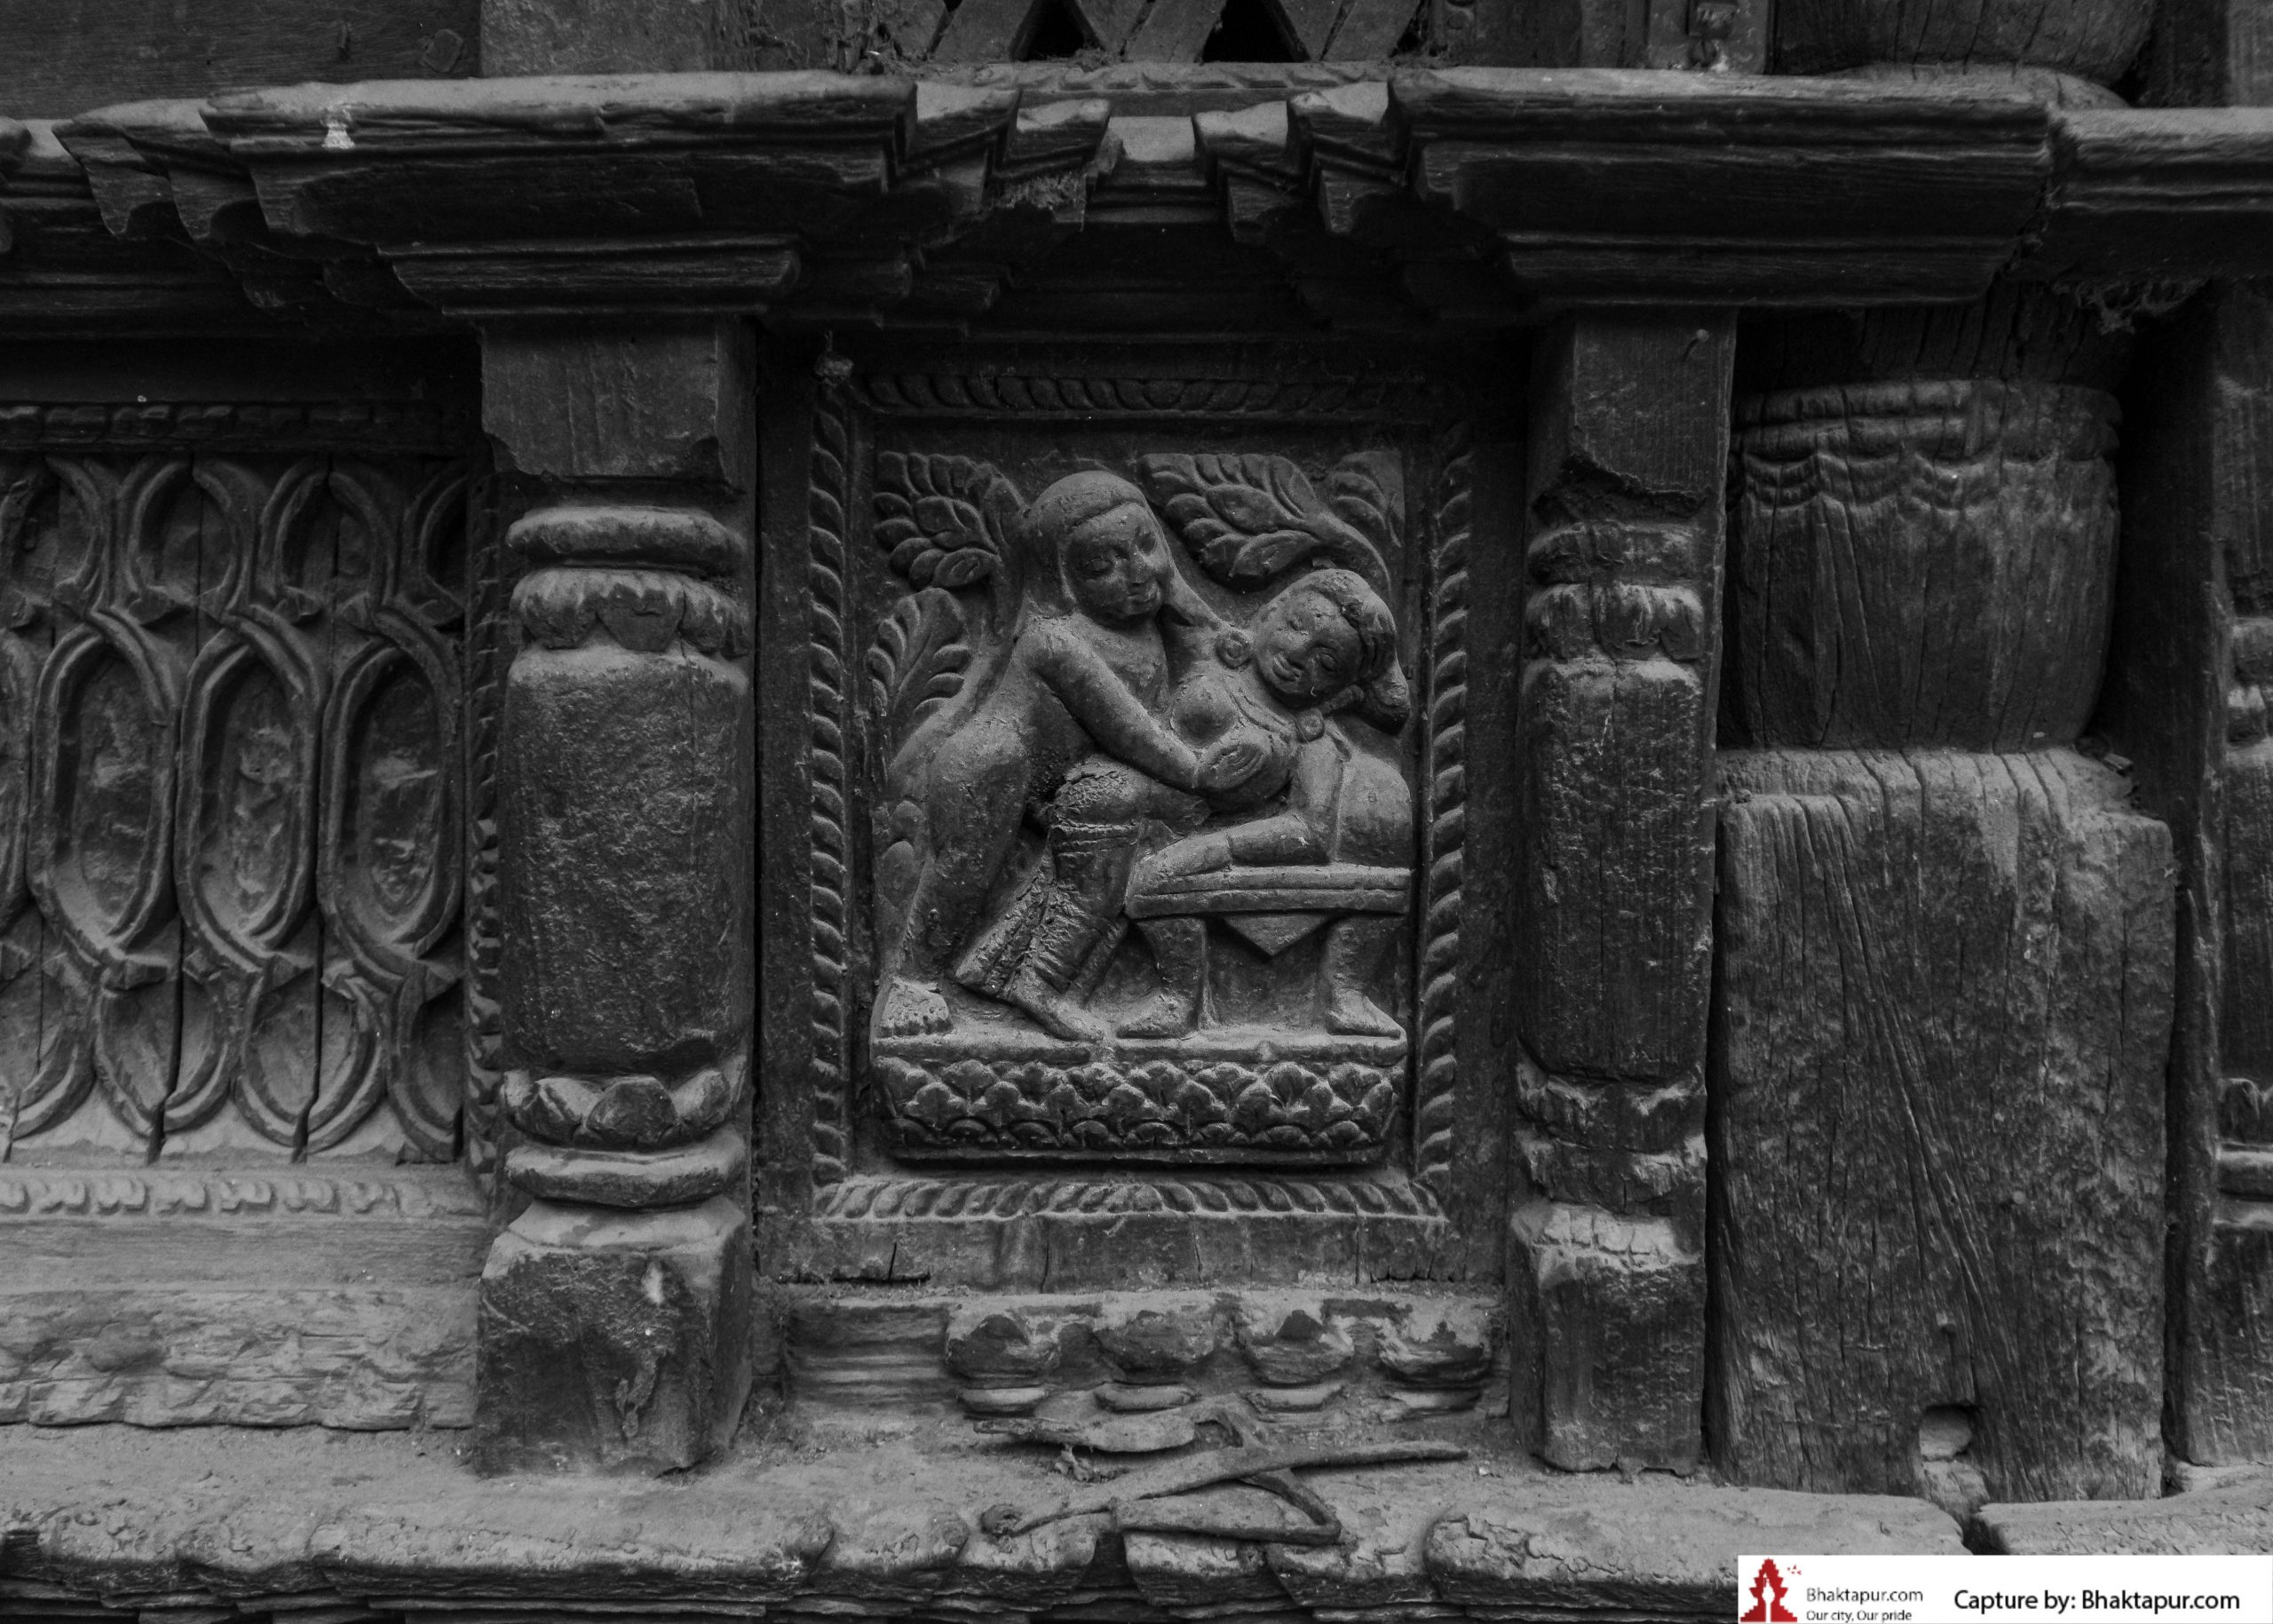 https://www.bhaktapur.com/wp-content/uploads/2021/08/erotic-carving-6-of-137-scaled.jpg